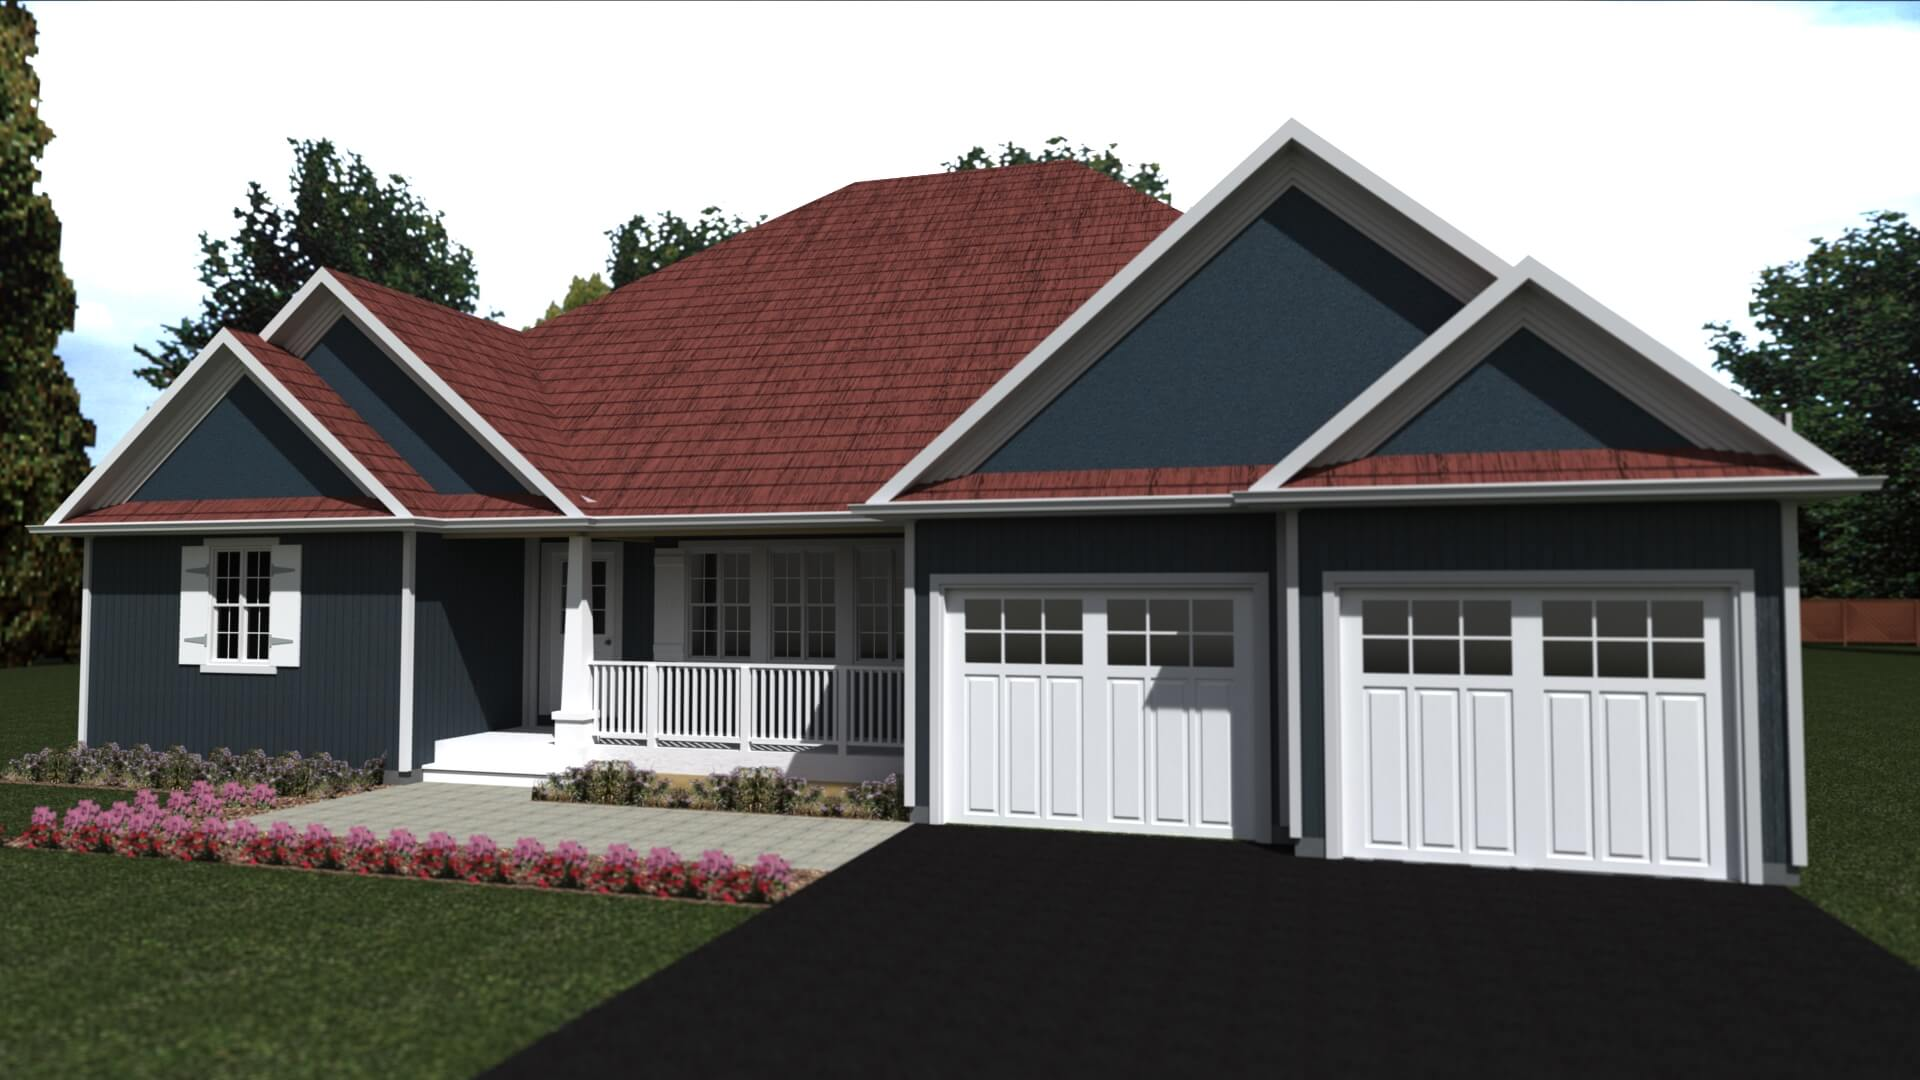 2316 sq.ft. timber mart house 3 bed 2 bath exterior render